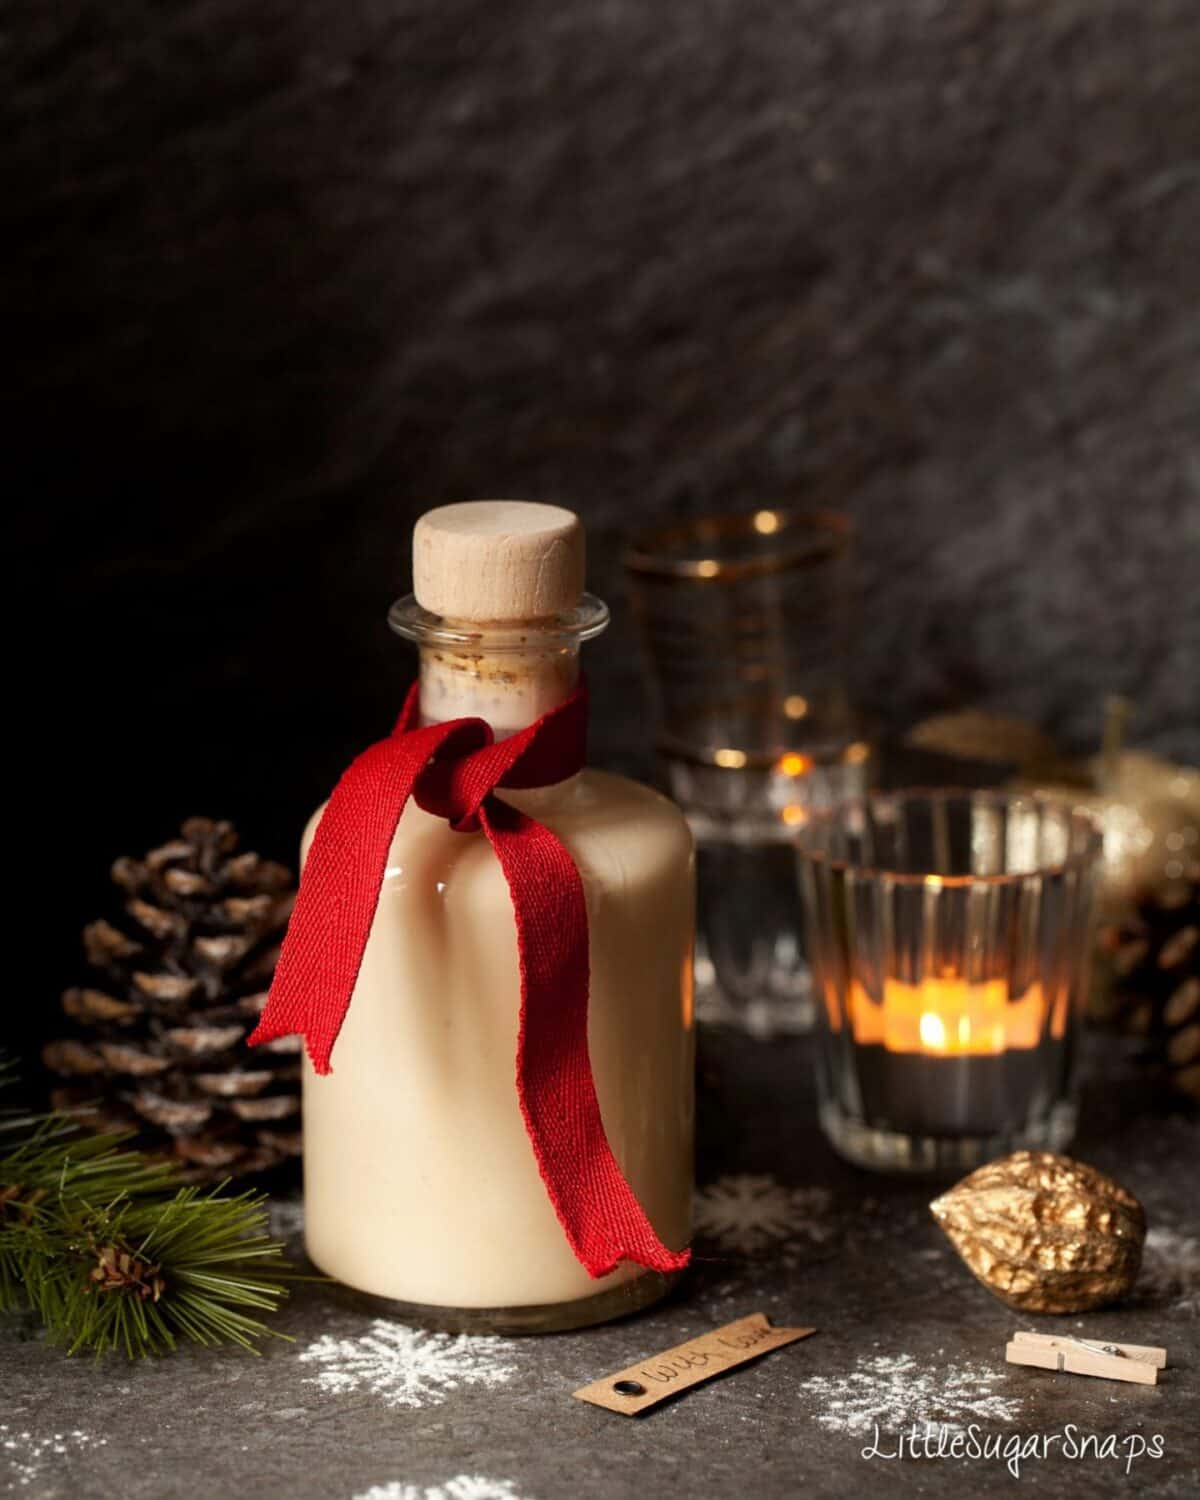 White Chocolate Liqueur in a bottle tied with a red ribbon, candles, pine cones and snowflakes nearby